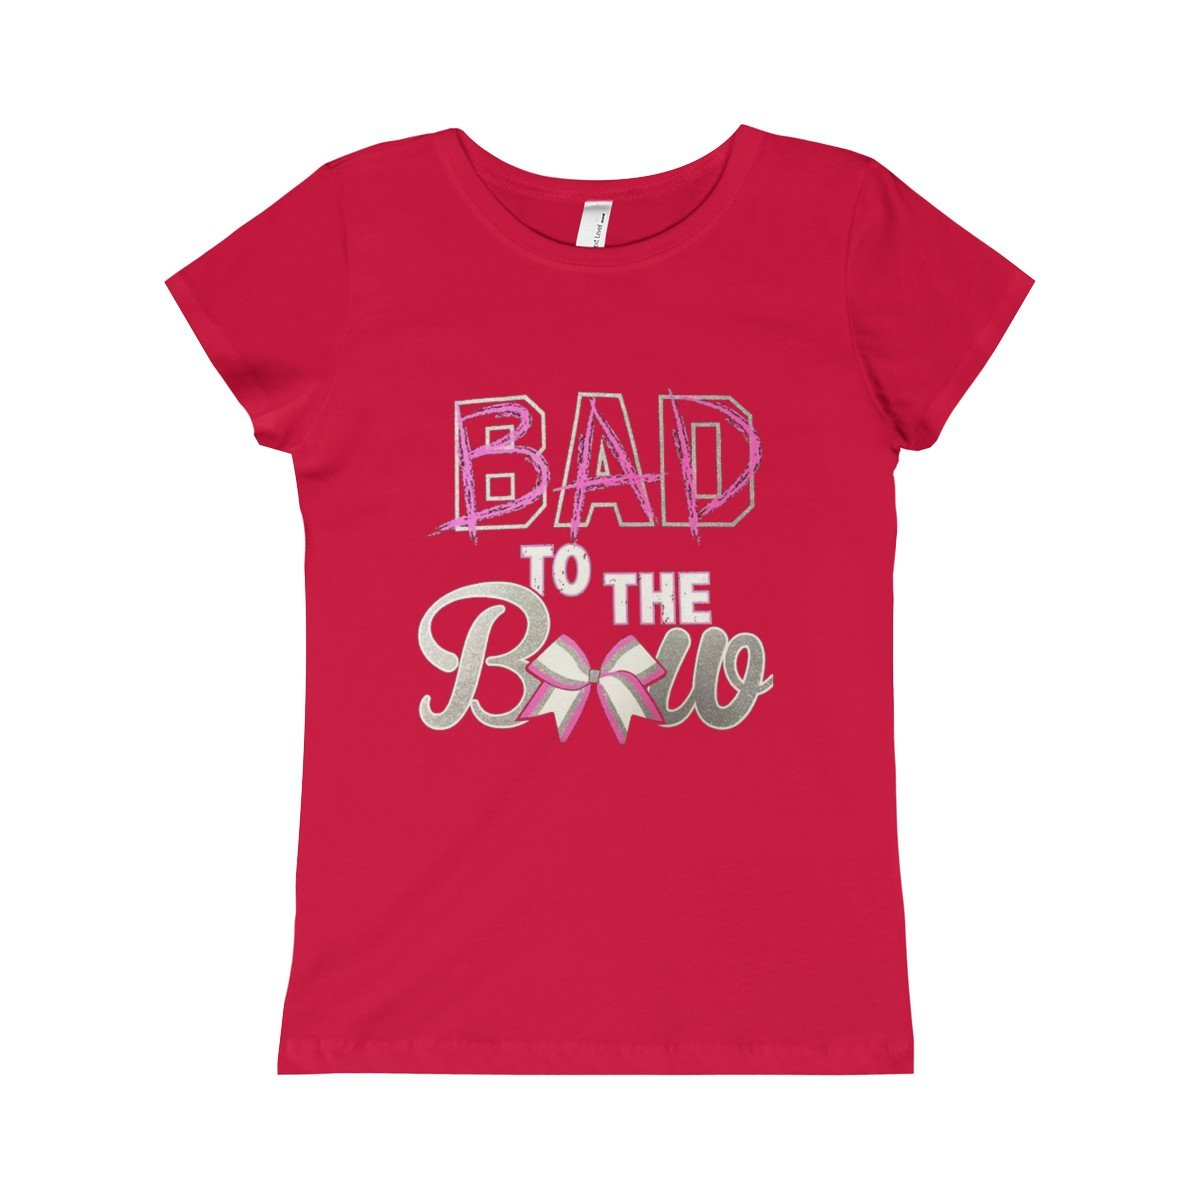 Girls Bad to the Bow Princess Tee